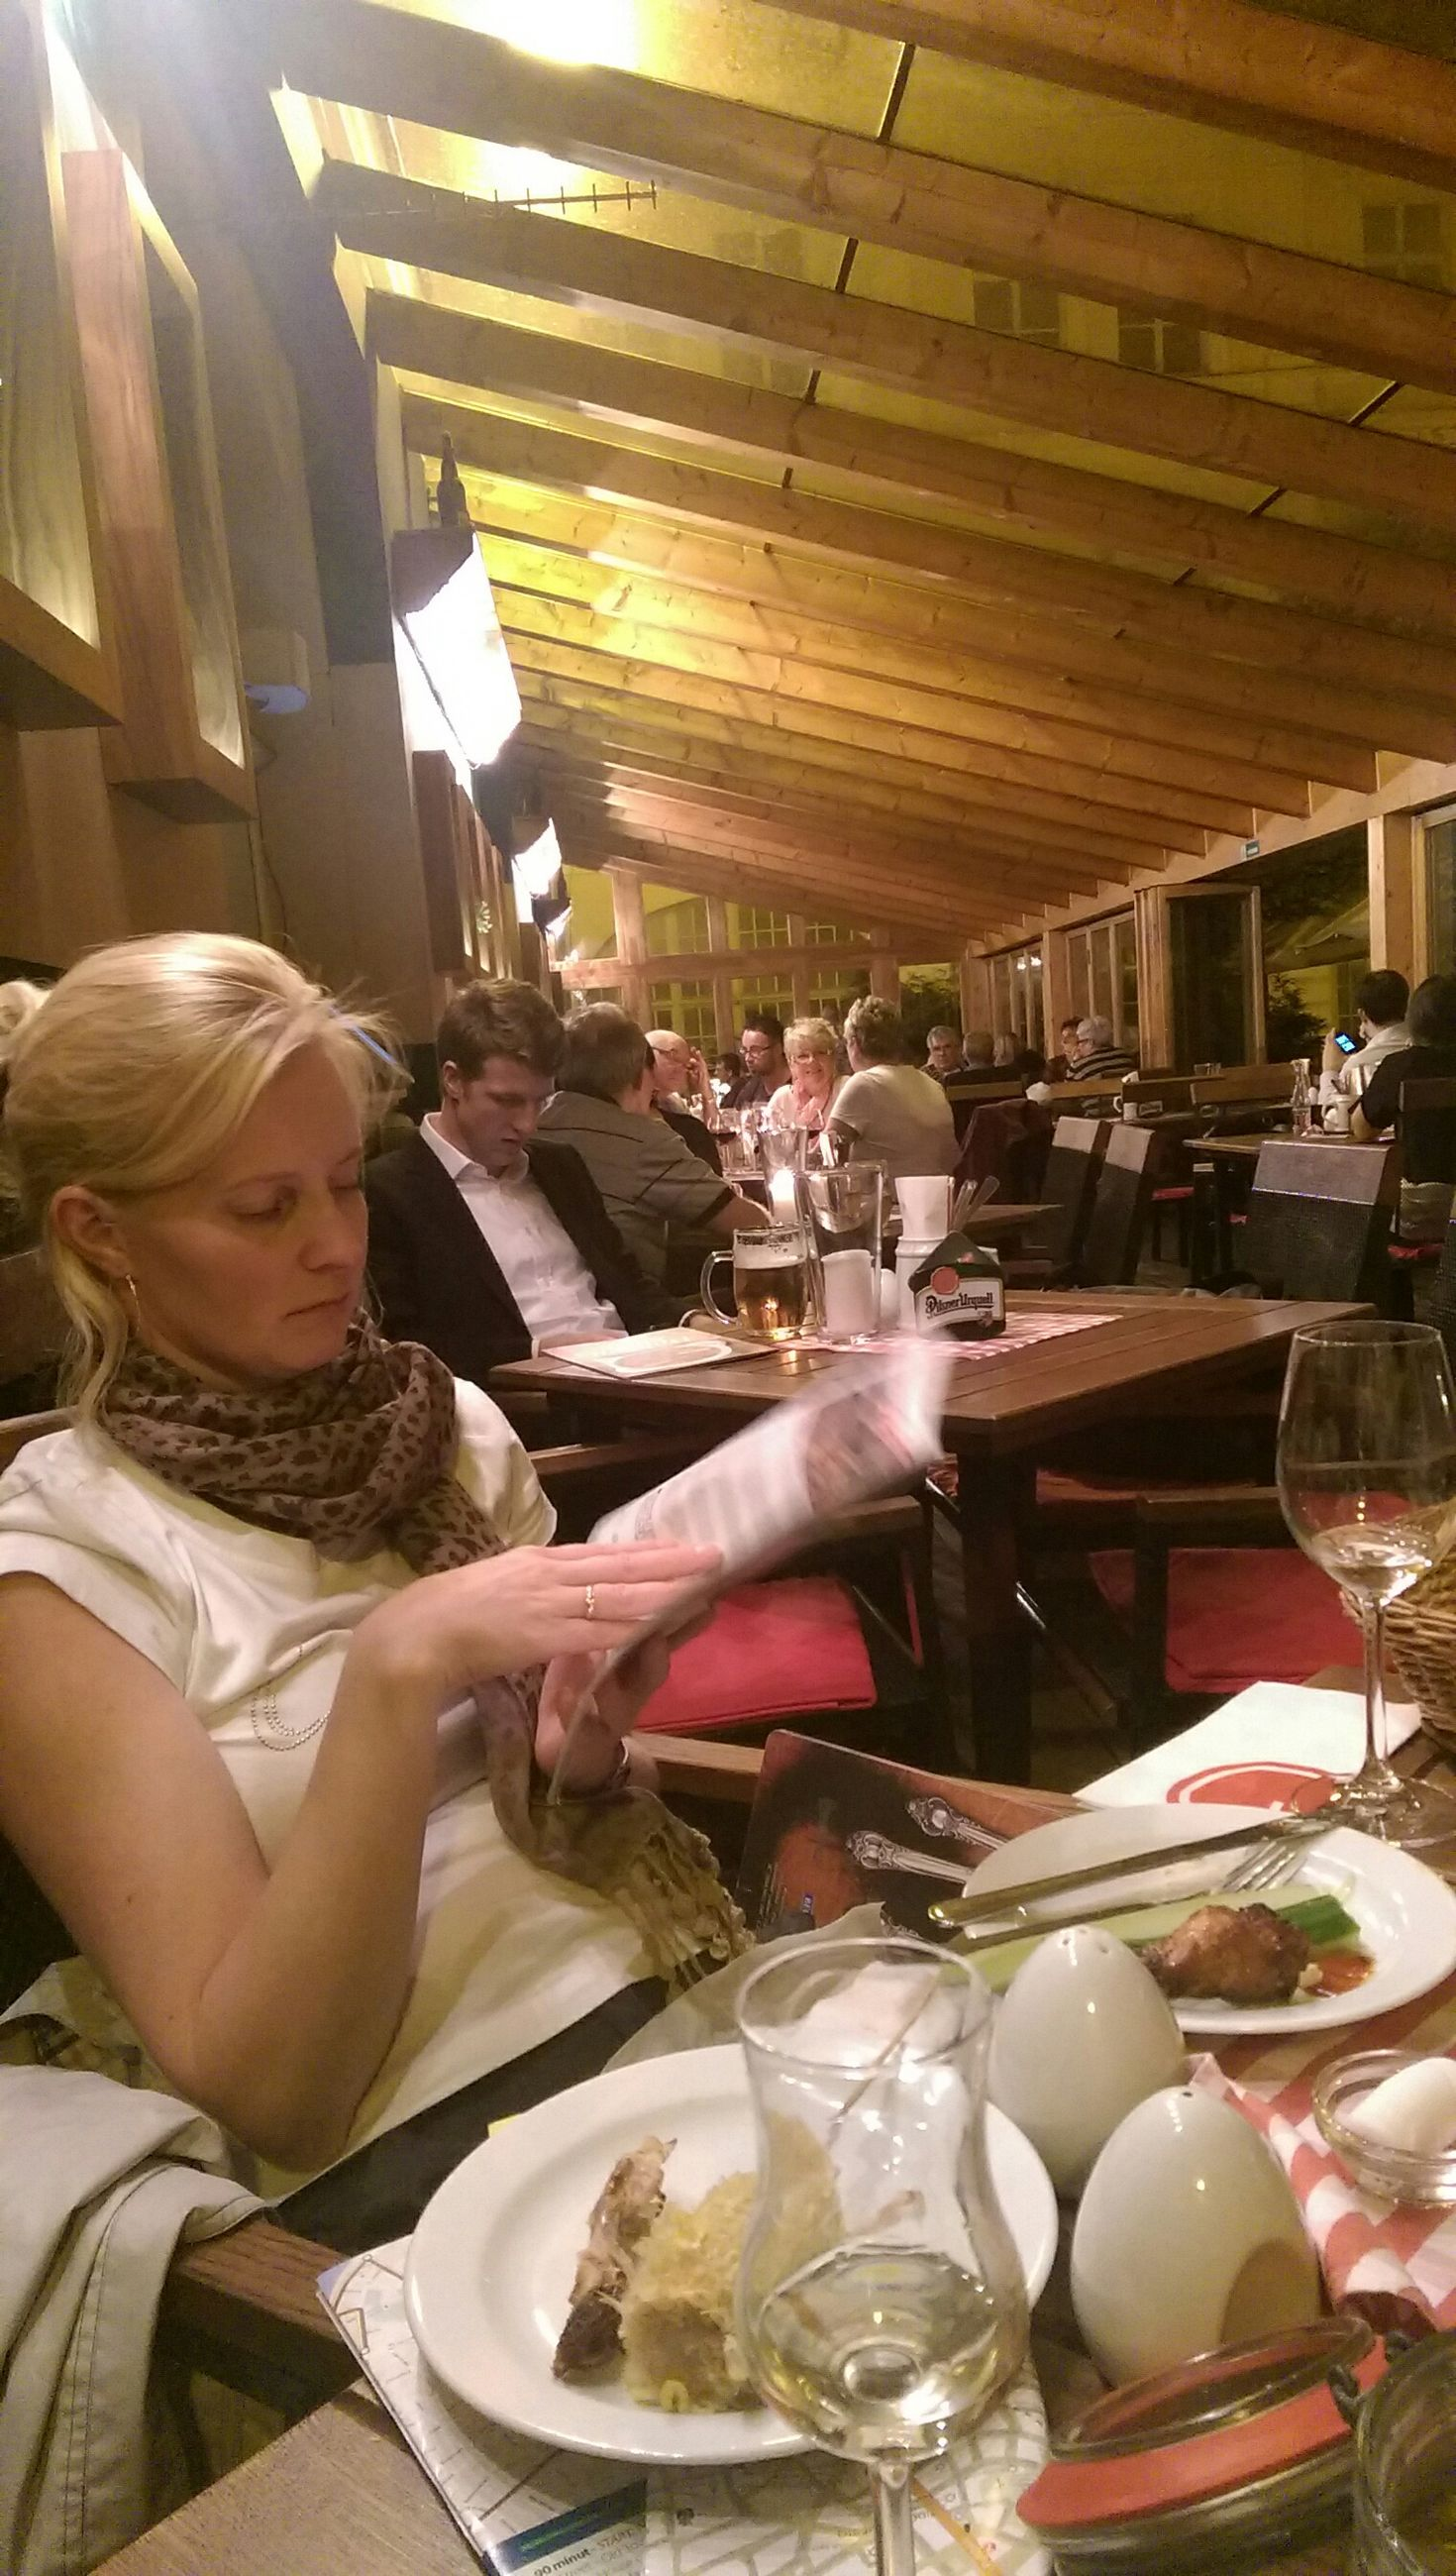 indoors, table, sitting, restaurant, lifestyles, food and drink, leisure activity, chair, drink, casual clothing, freshness, person, place setting, holding, wineglass, drinking glass